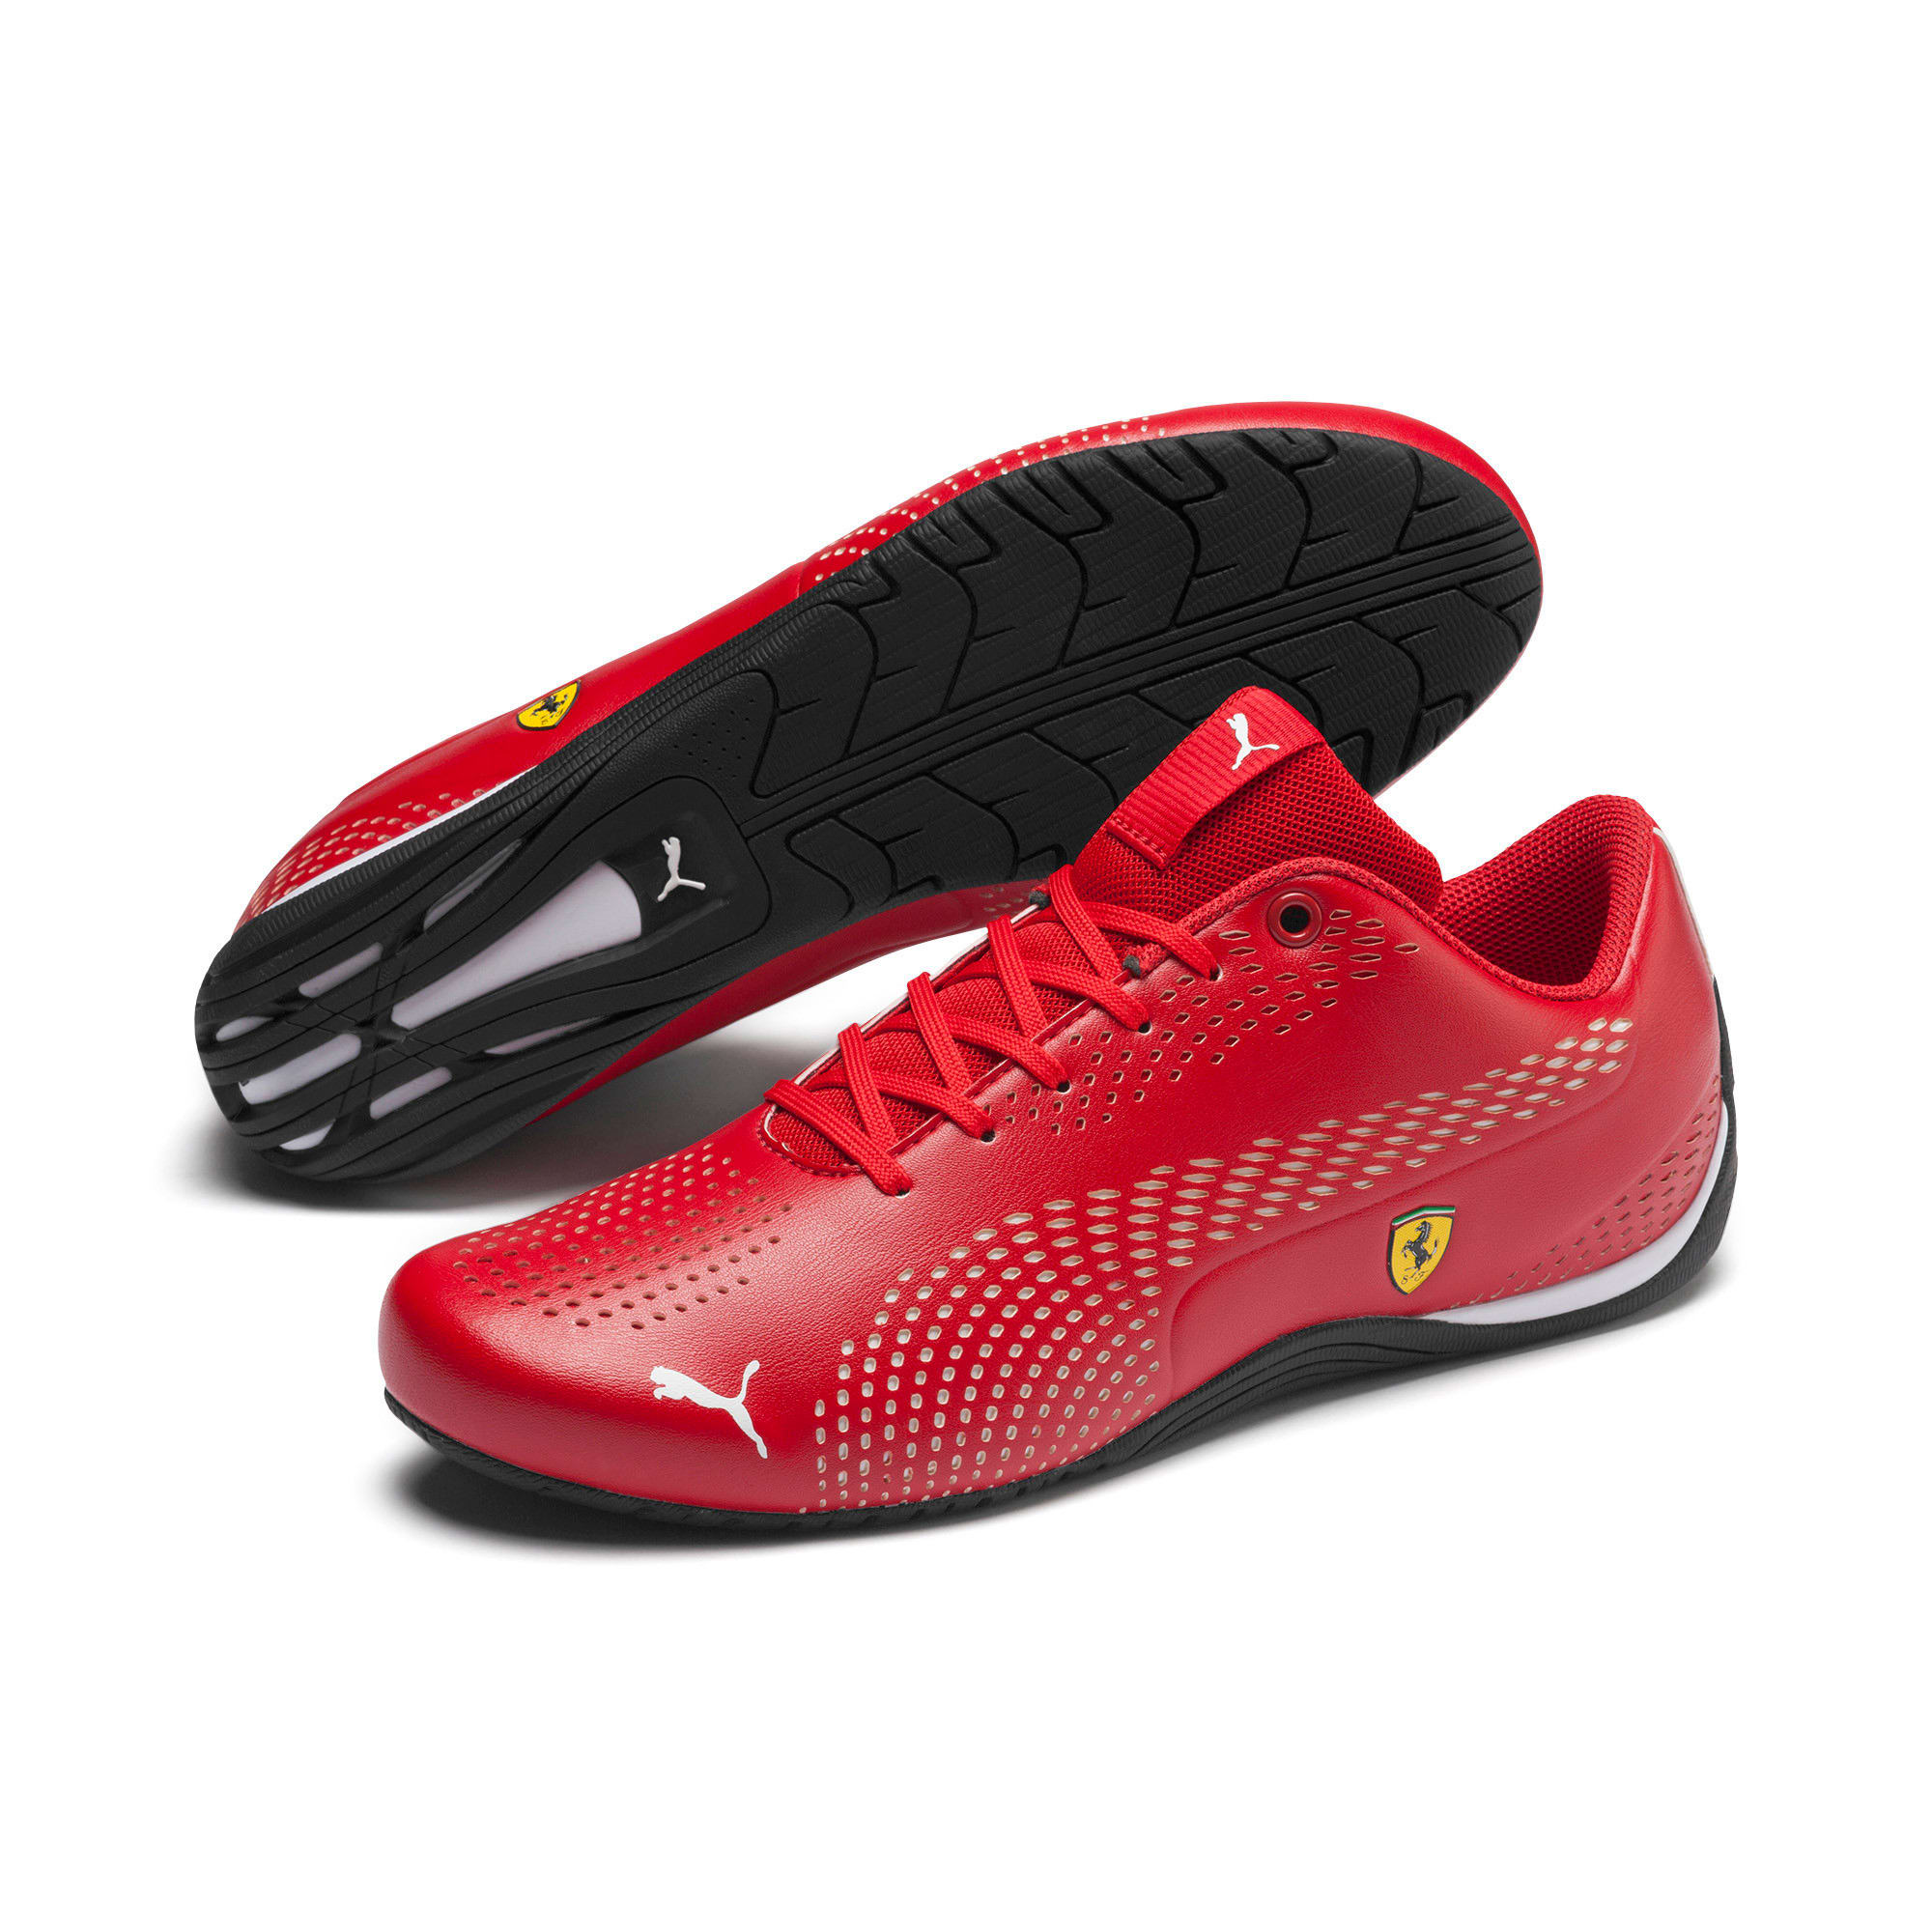 Thumbnail 3 of Ferrari Drift Cat 5 Ultra II Sneaker, Rosso Corsa-Puma White, medium